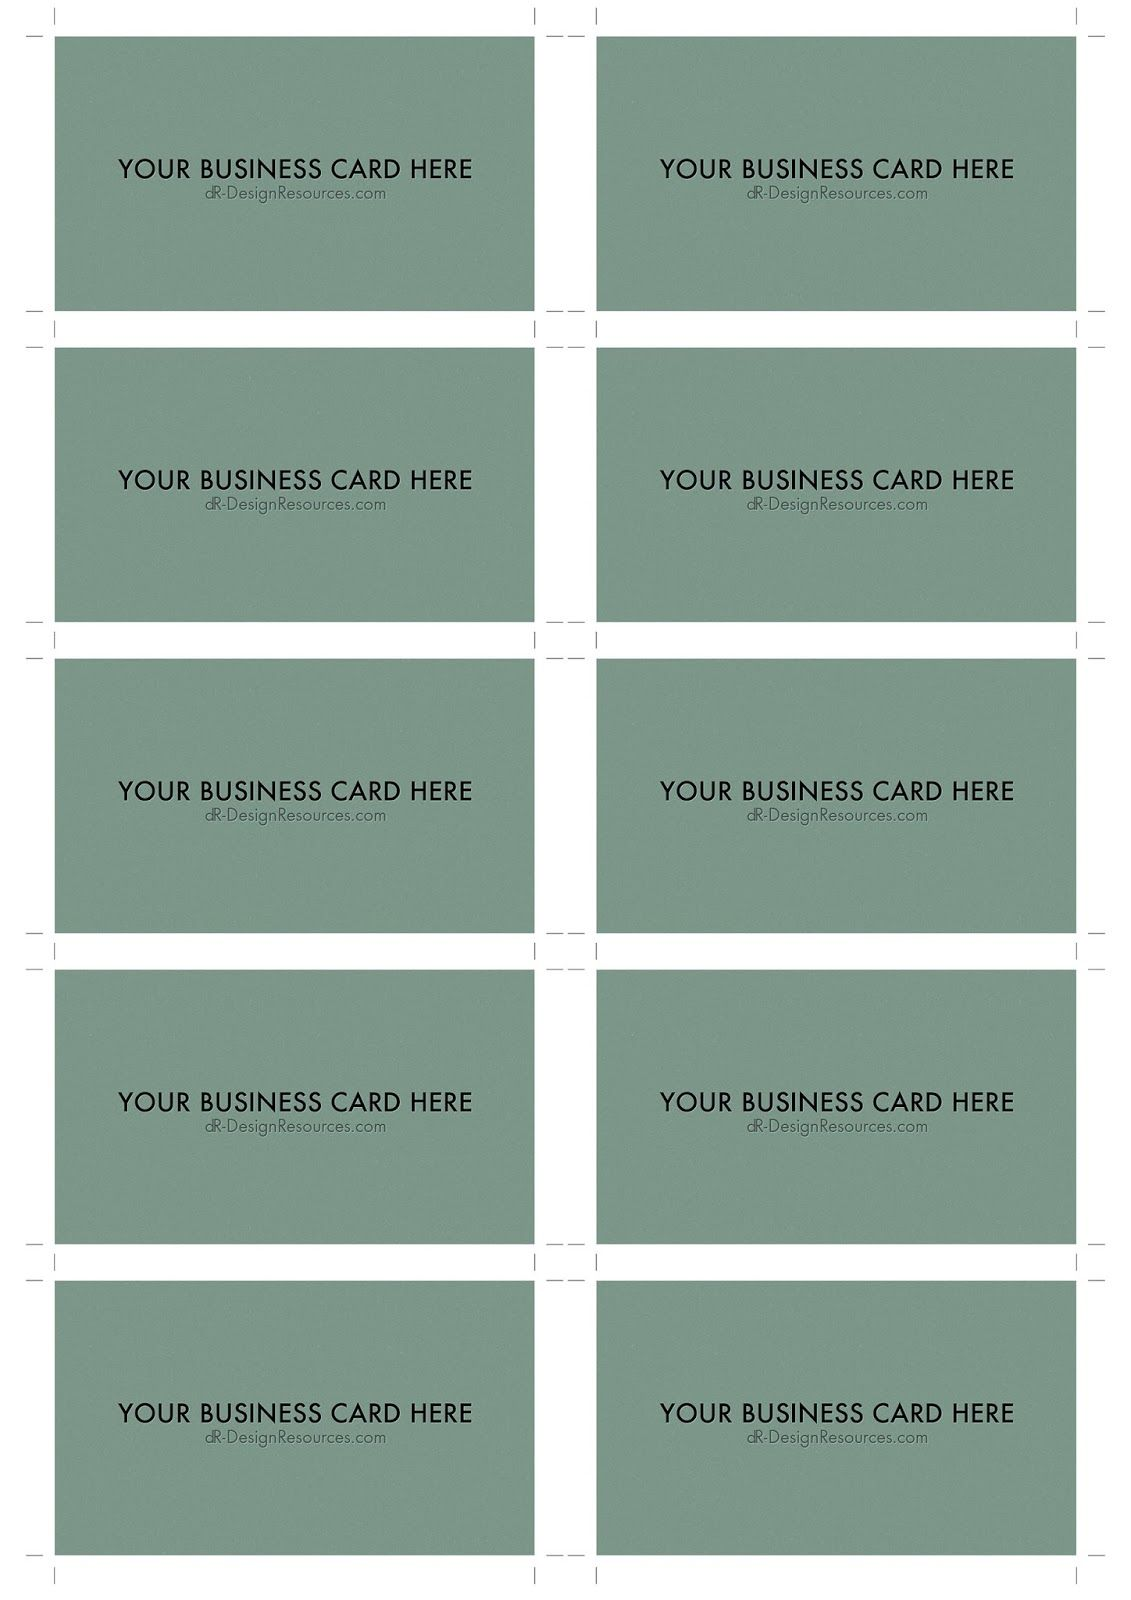 A4 business card template psd 10 per sheet business cards a4 business card template psd 10 per sheet cheaphphosting Images